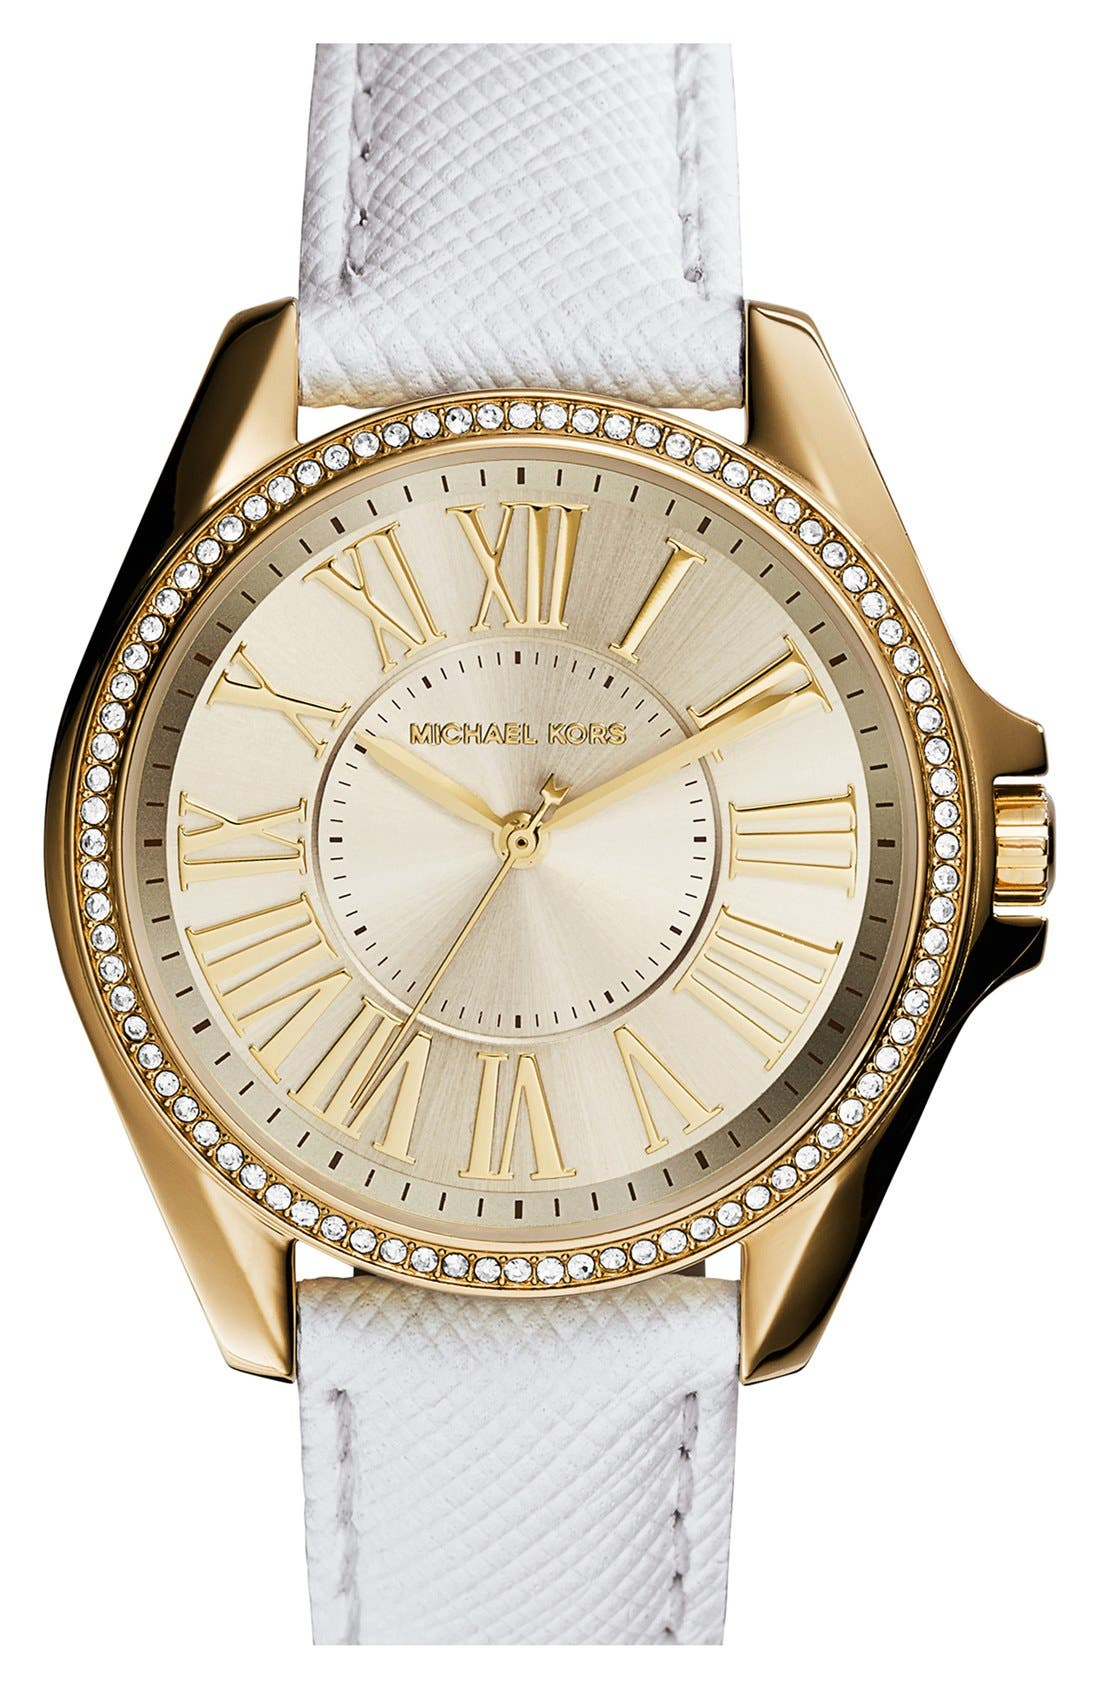 Main Image - Michael Kors 'Kacie' Crystal Bezel Leather Strap Watch, 39mm case